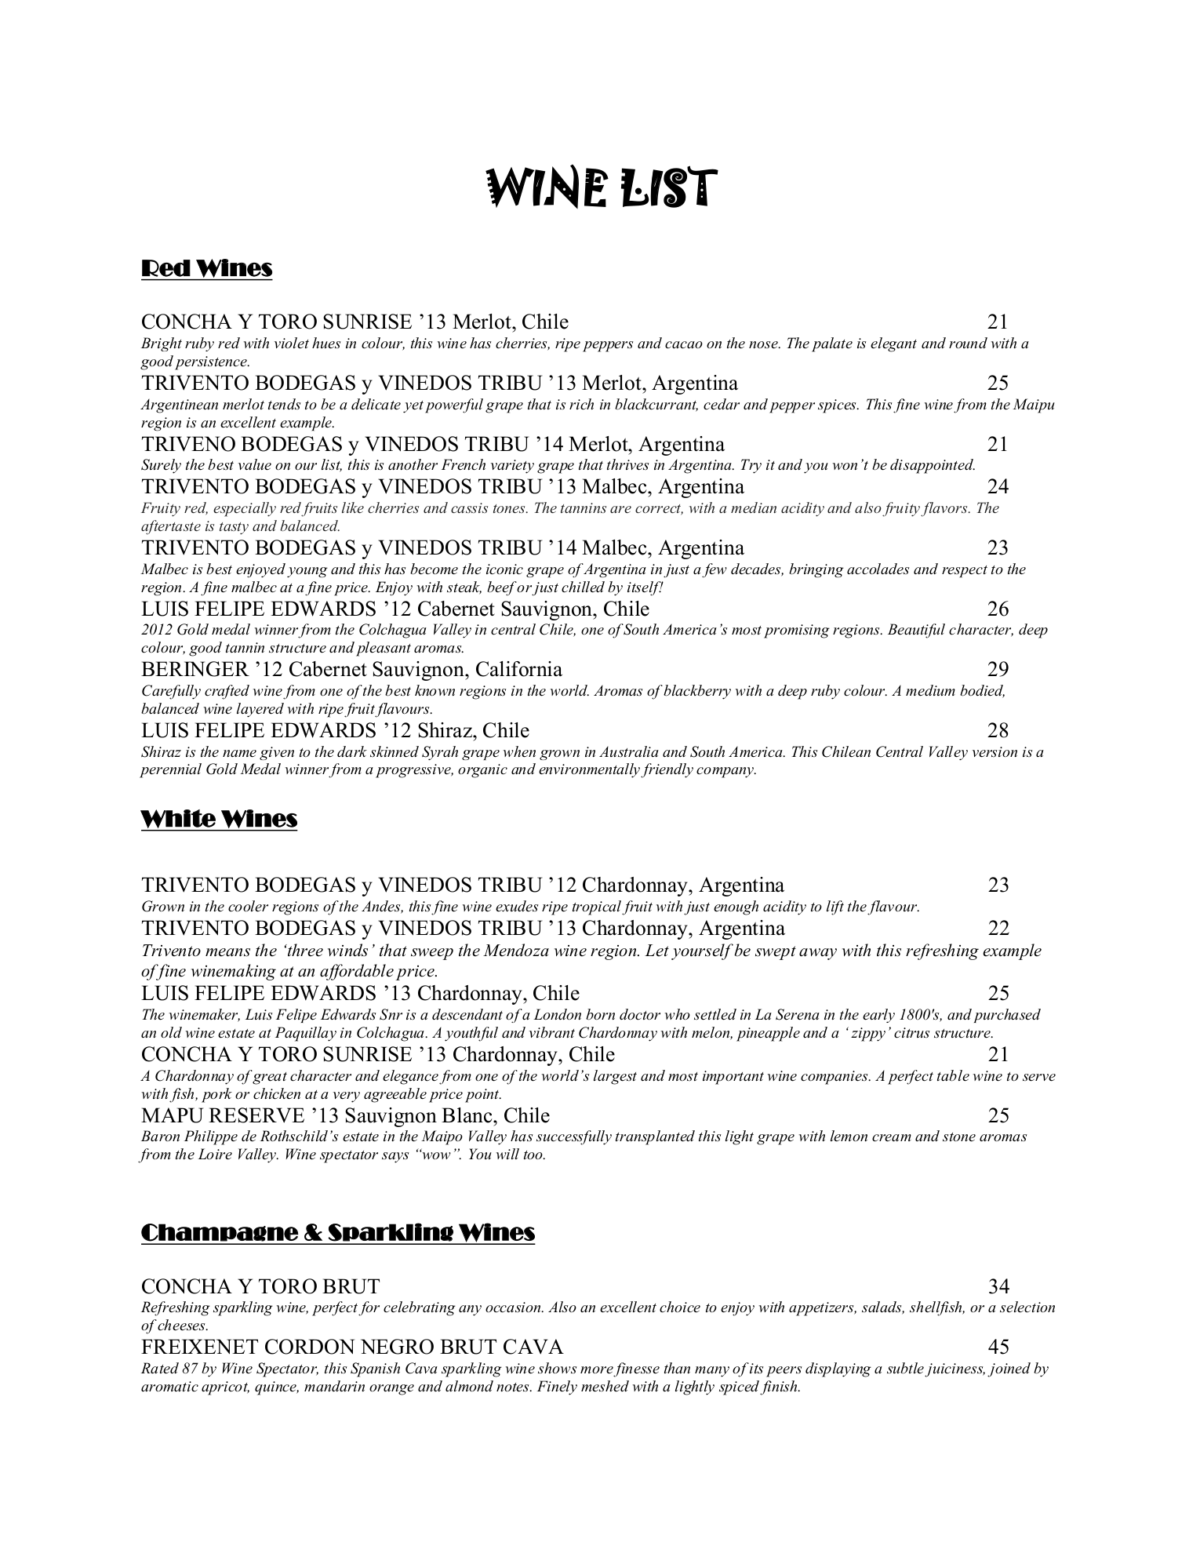 WINE LIST 1200x1553 - Restaurant & Bar